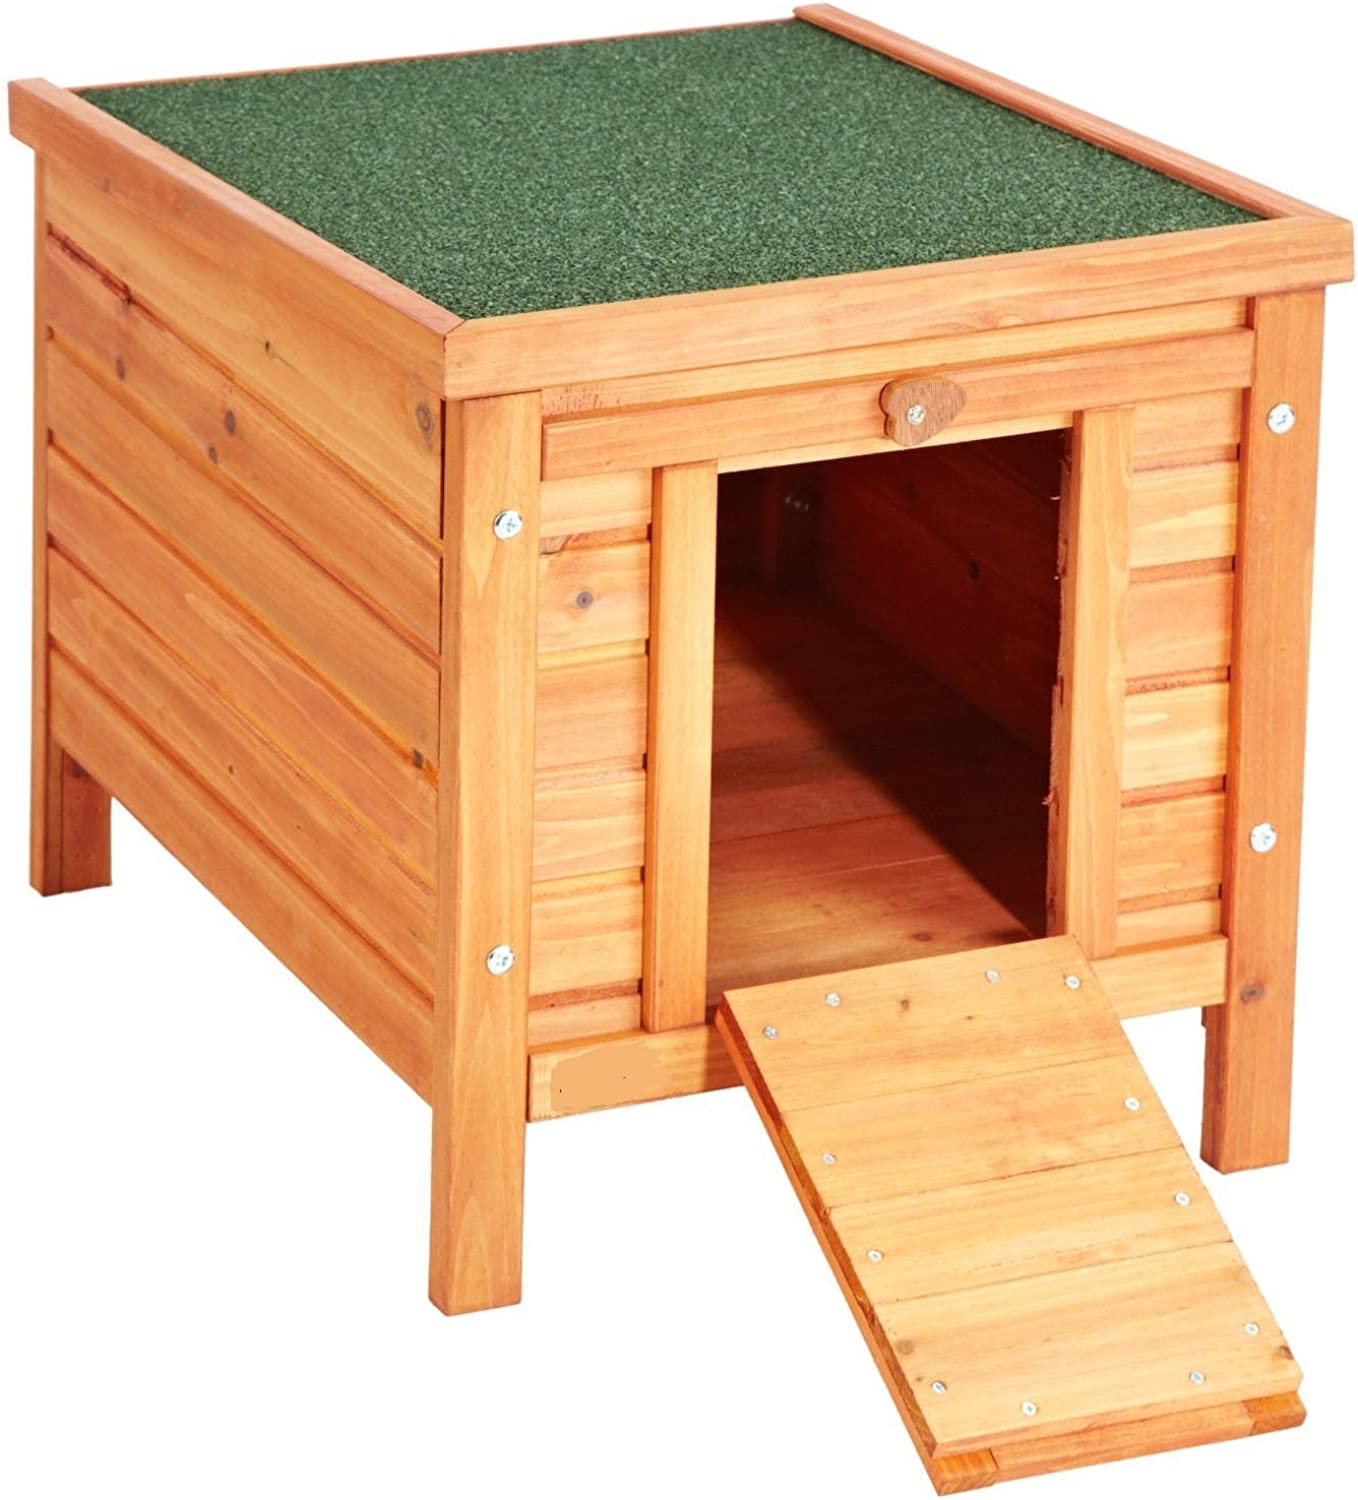 BUNNY BUSINESS Rabbit Guinea Pig Hide House Run Hutch, 42 × 43 × 51 cm